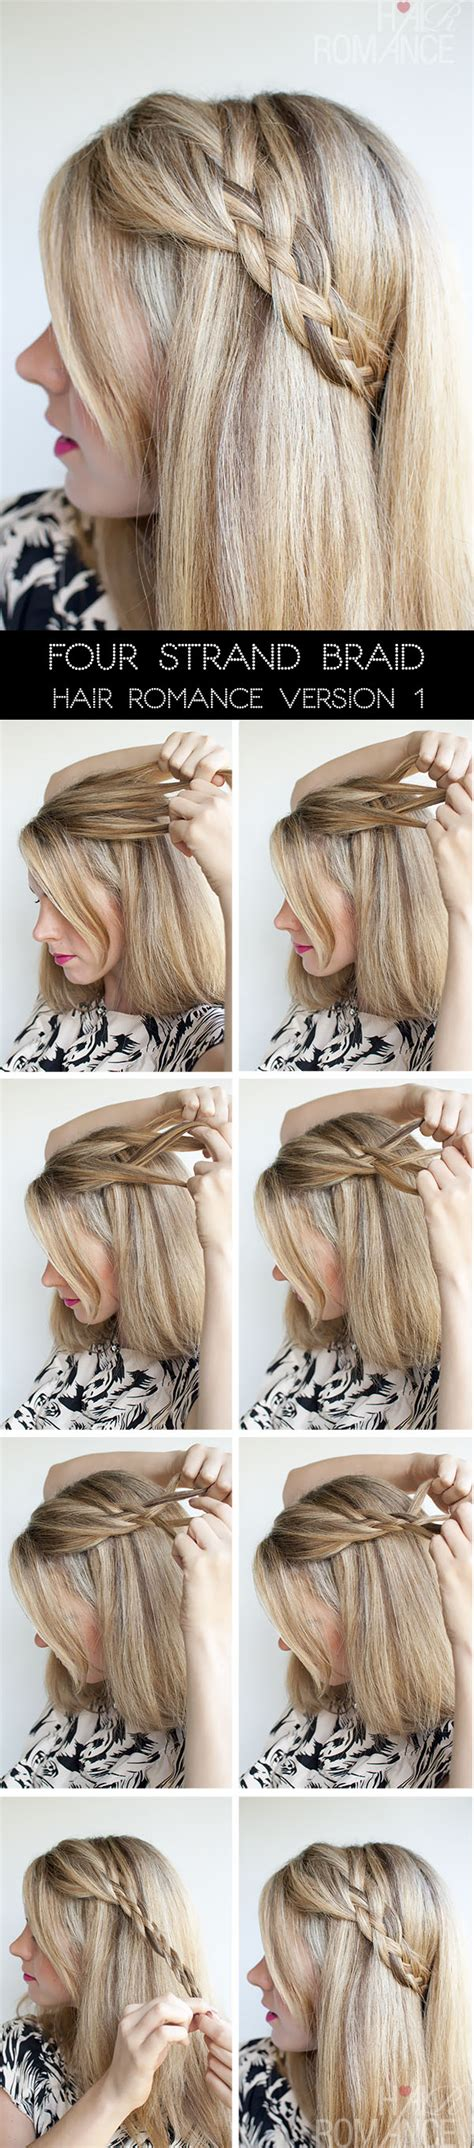 hair braiding styles step by step hairstyle tutorial four strand braids and slide up